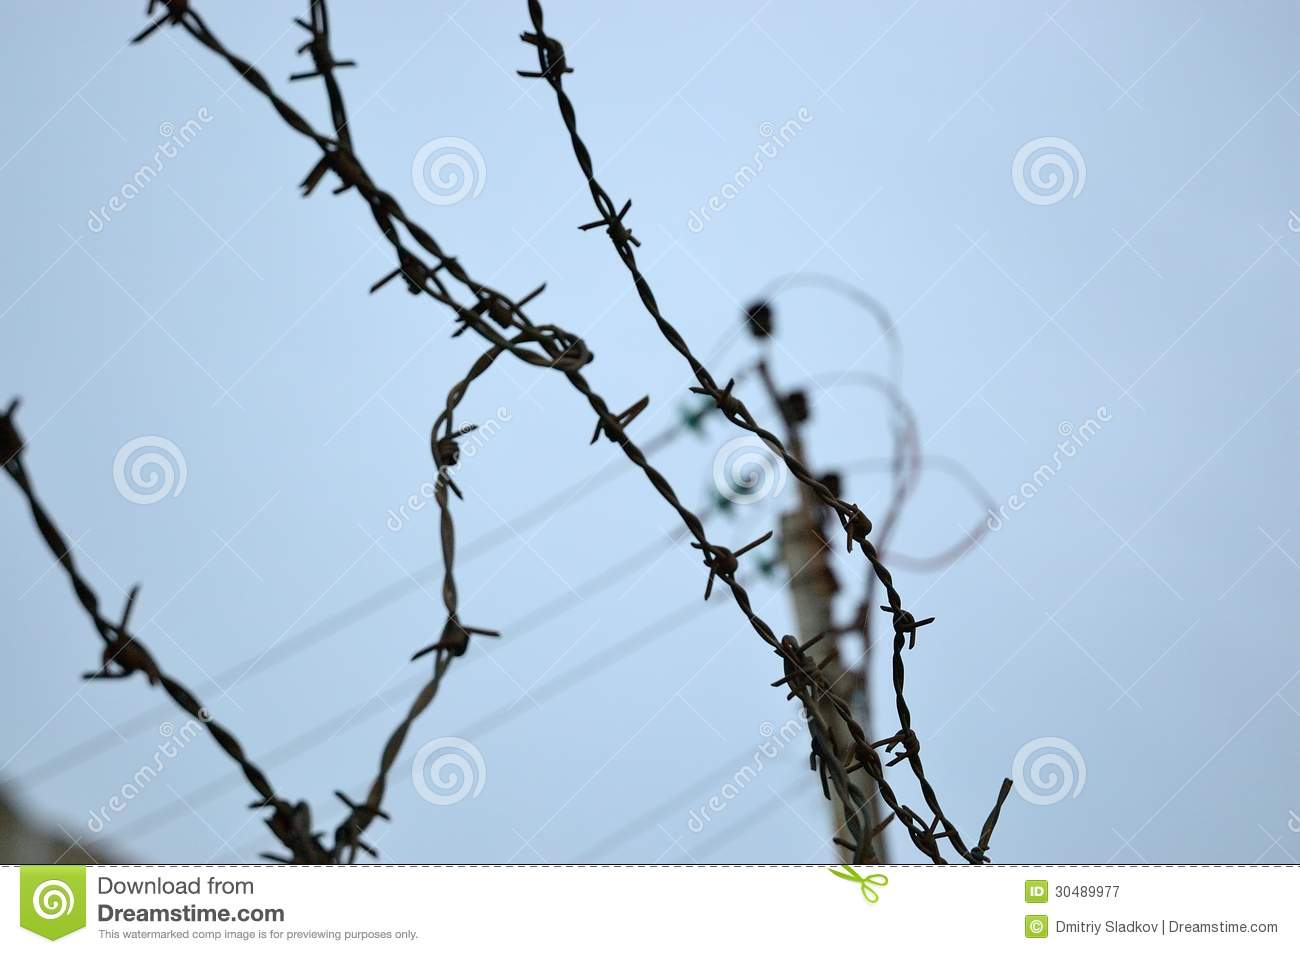 Barbed wire royalty free stock photography image